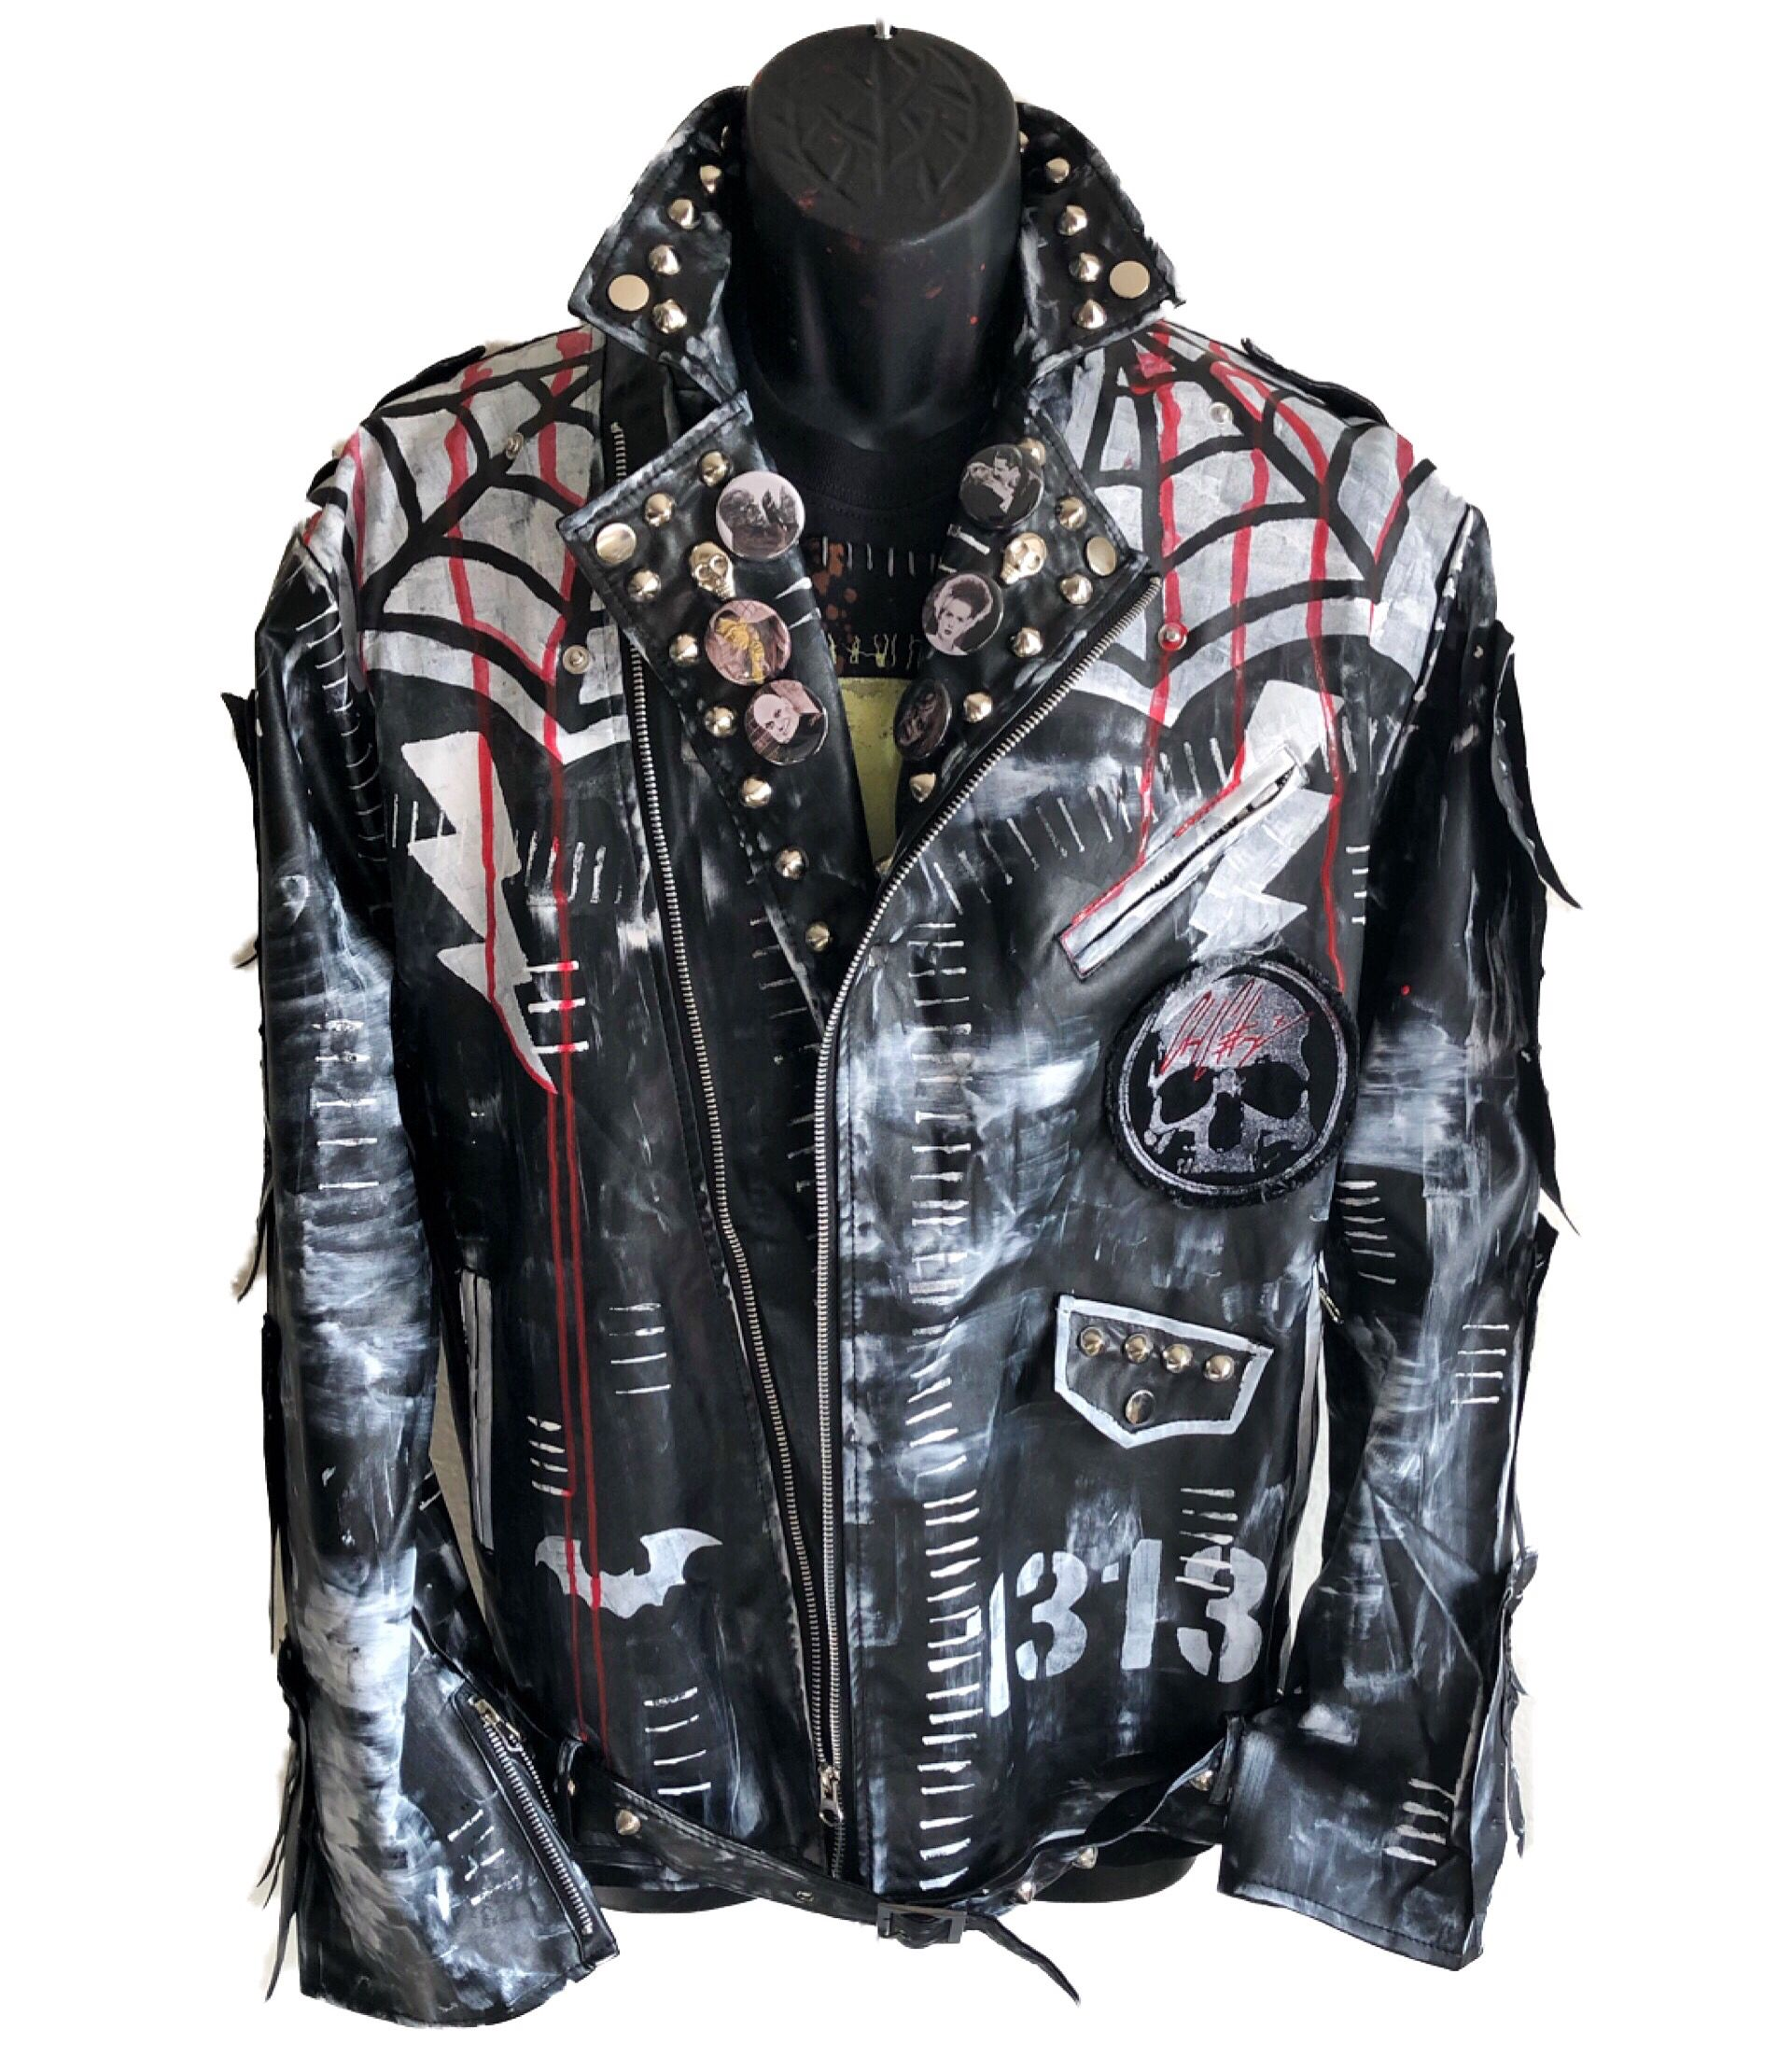 Horror Classic Jacket By Chad Cherry Etsy Punk Outfits Battle Jacket Classic Jacket [ 2205 x 1920 Pixel ]